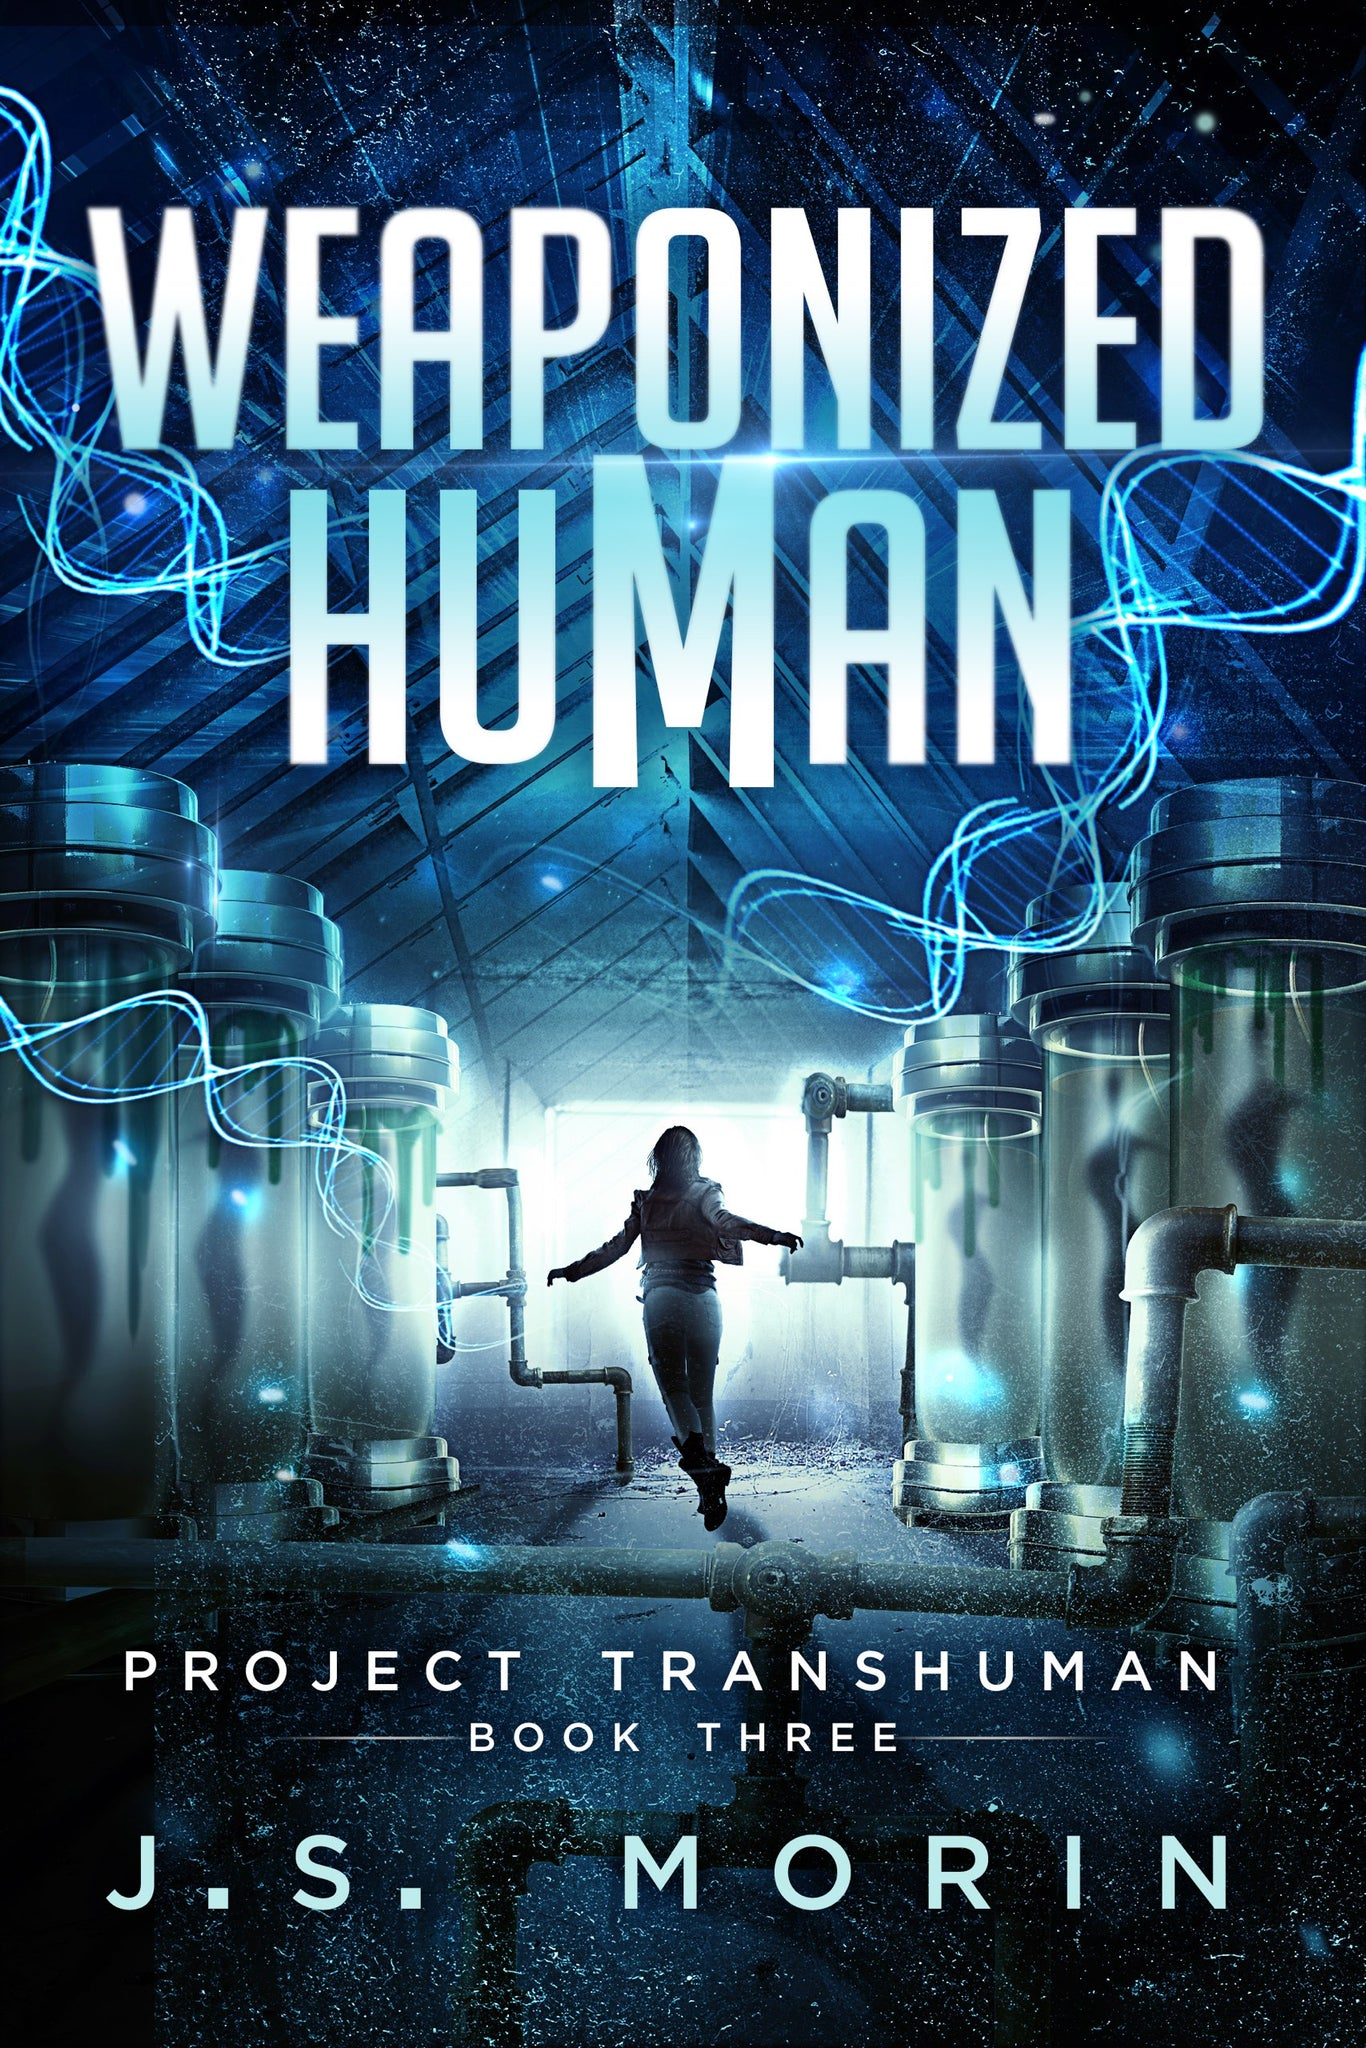 Weaponized Human, Project Transhuman, Book 3